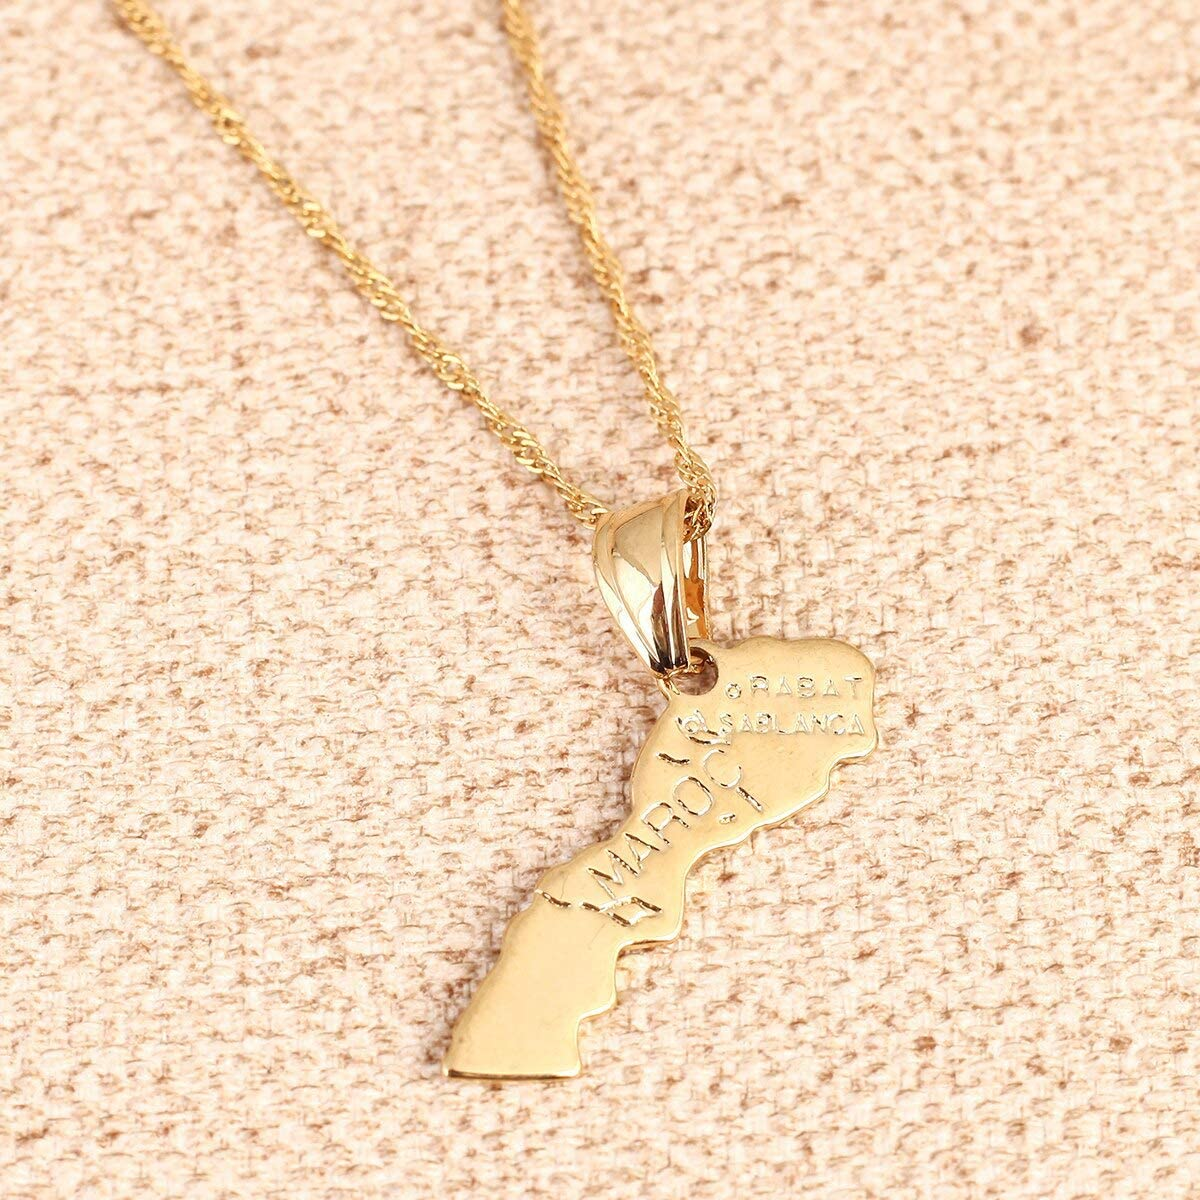 Gold Color Maroc Map Pendant Necklace For Women Men Morocco Map Jewelry